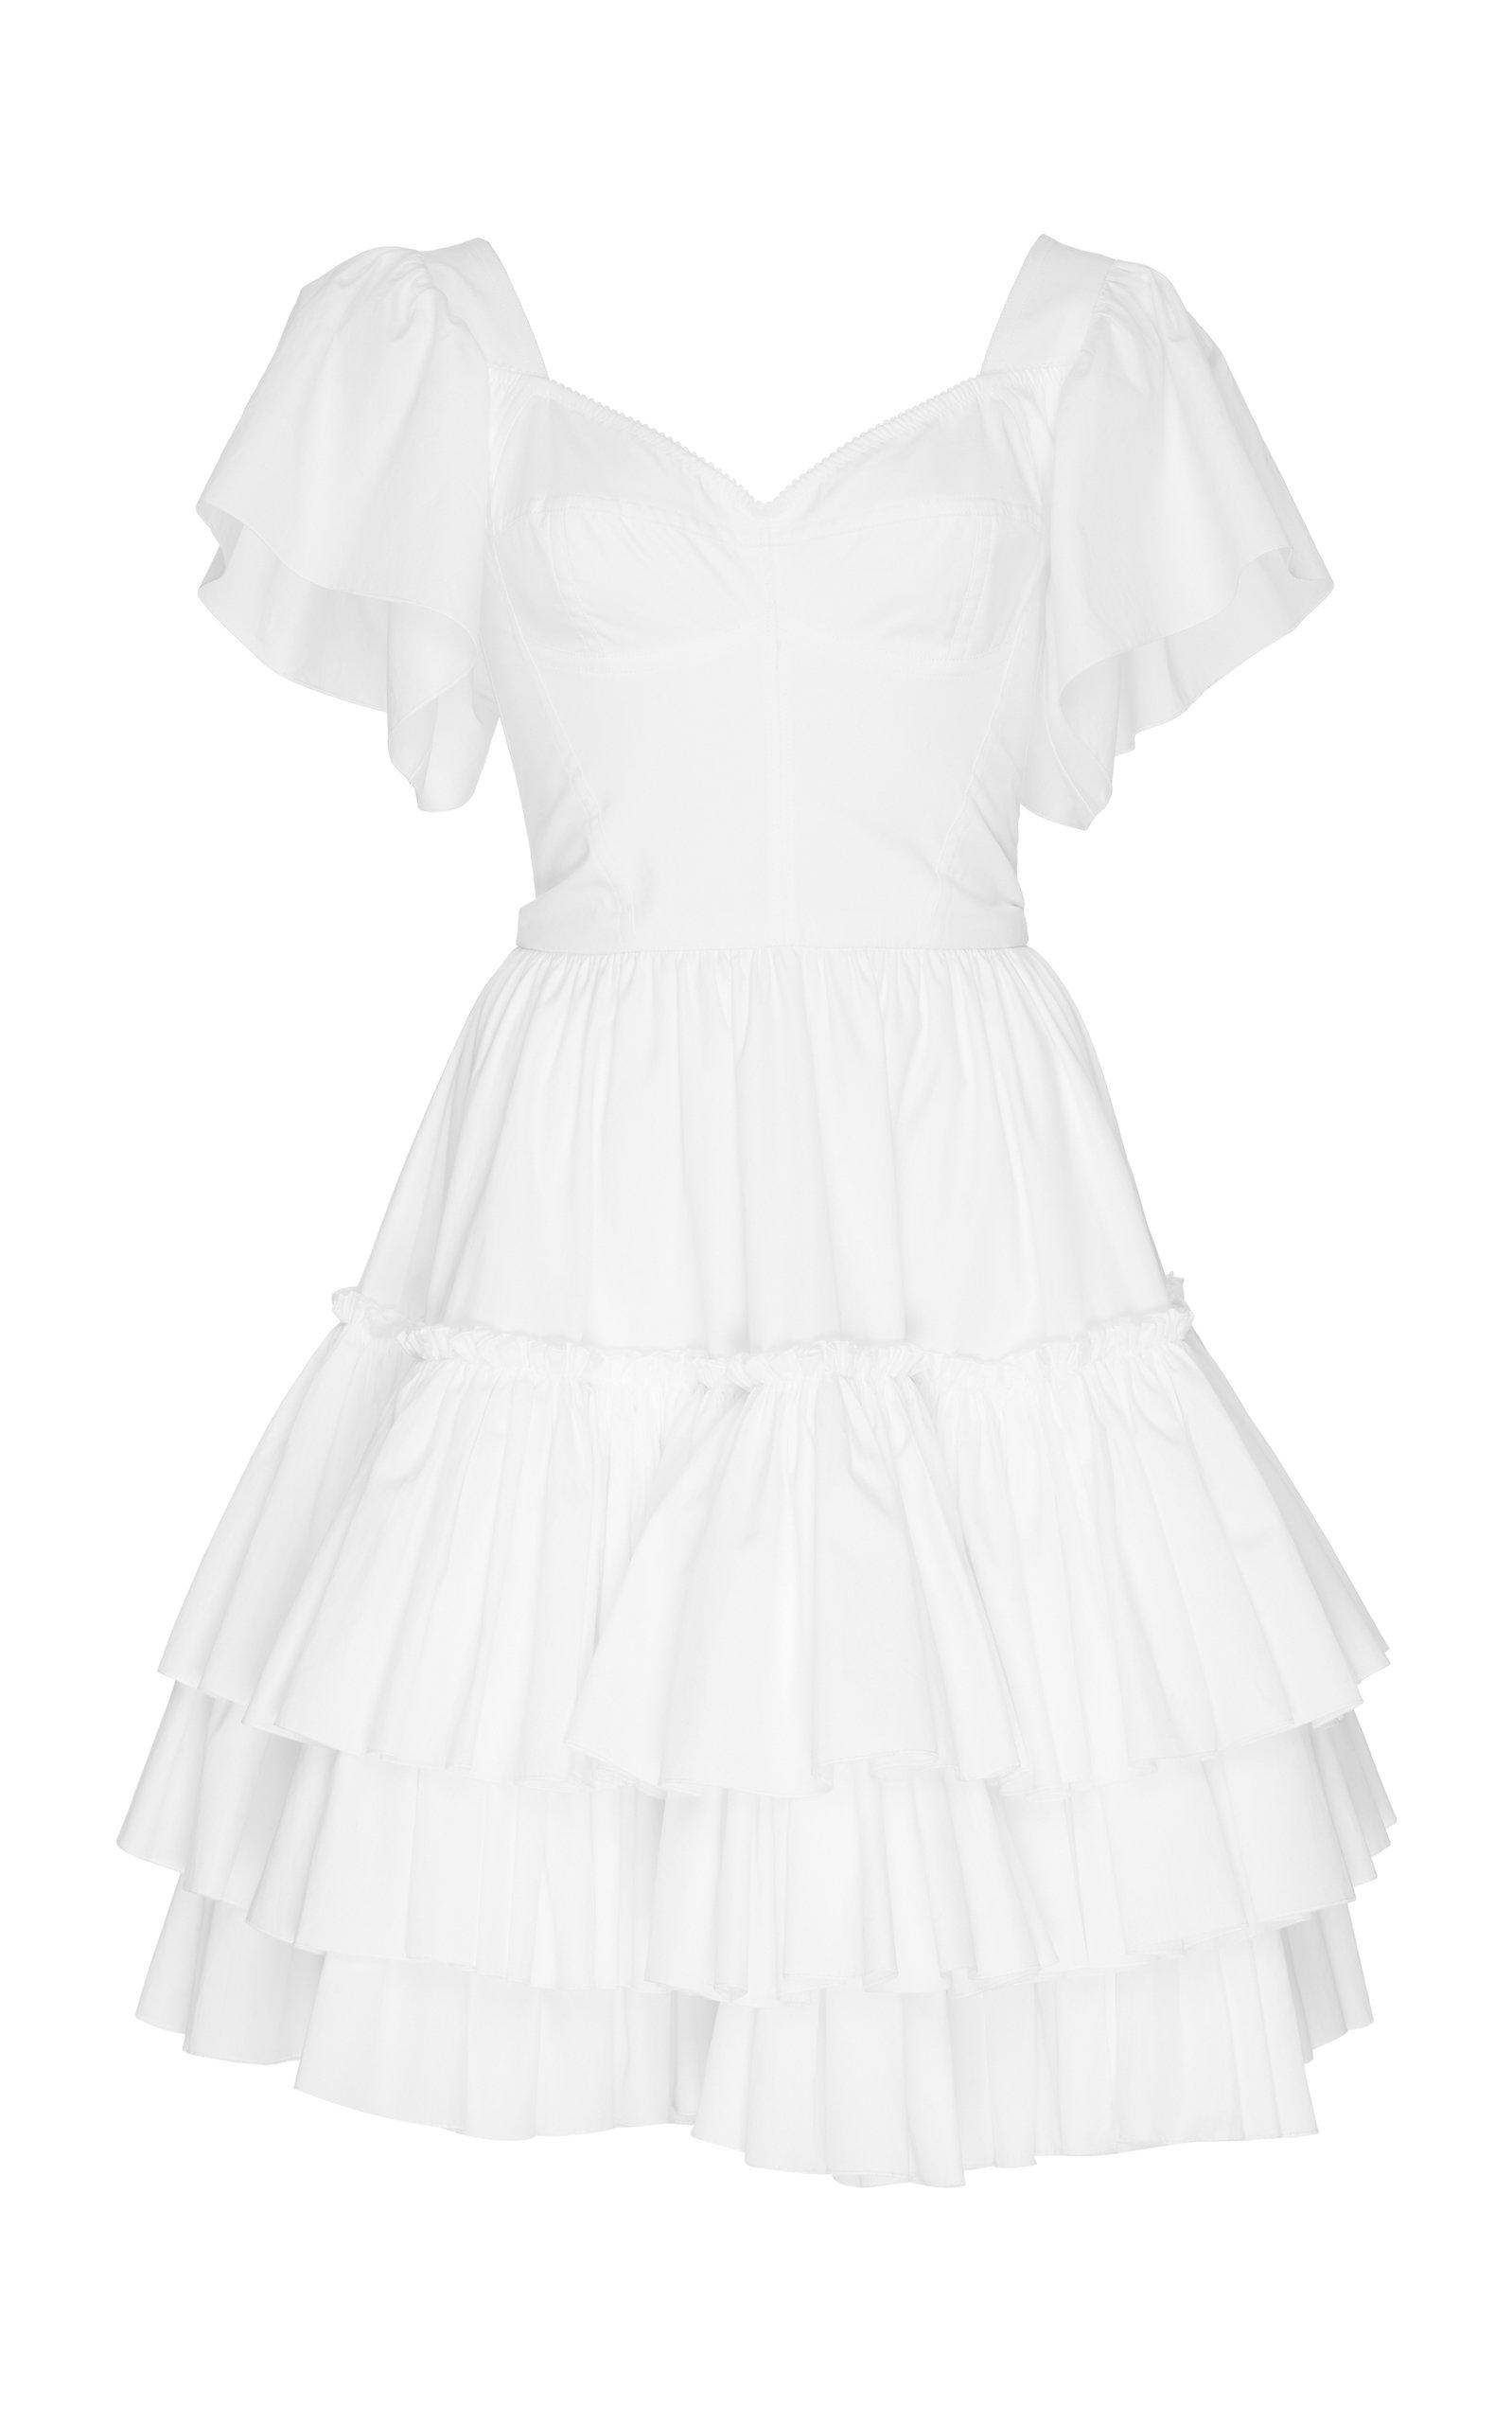 Tiered-Ruffle Cotton-Poplin Mini Dress in White